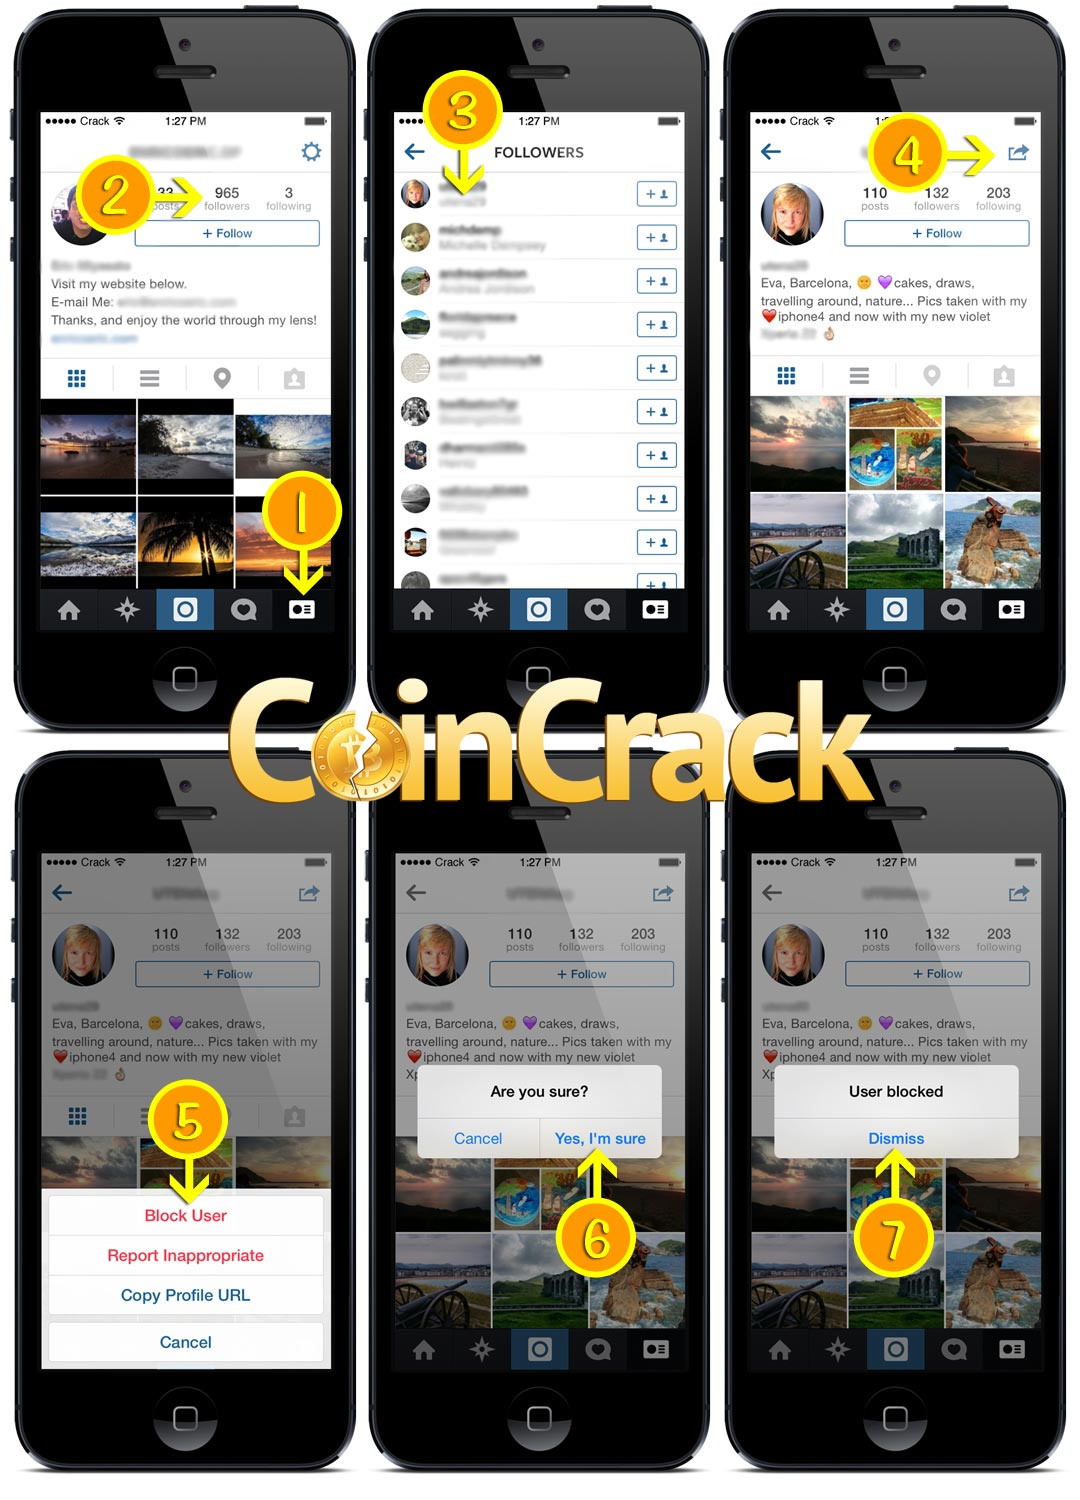 How to delete followers on instagram coincrack steps to delete followers on instagram ccuart Choice Image